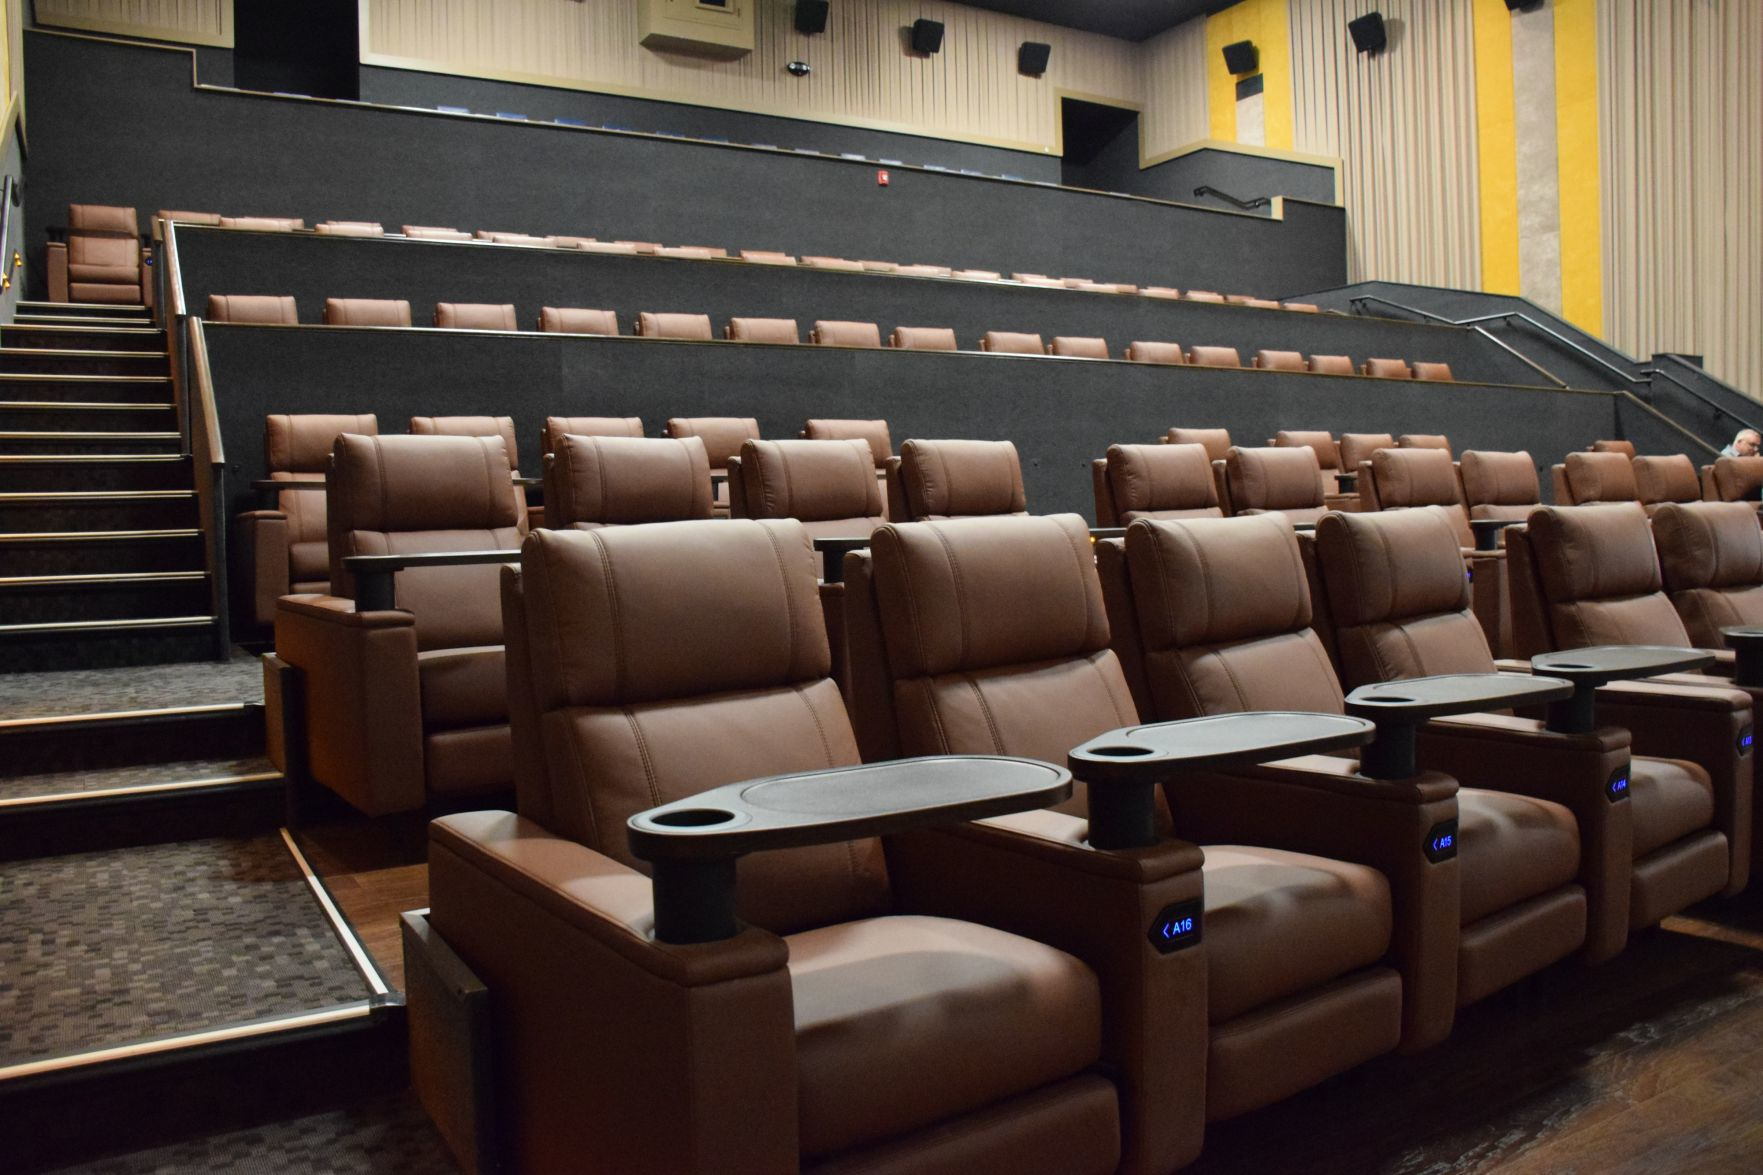 Reclining Chair Movie Theater Village Cinema Opens Remodeled Auditoriums With Reclining Seats